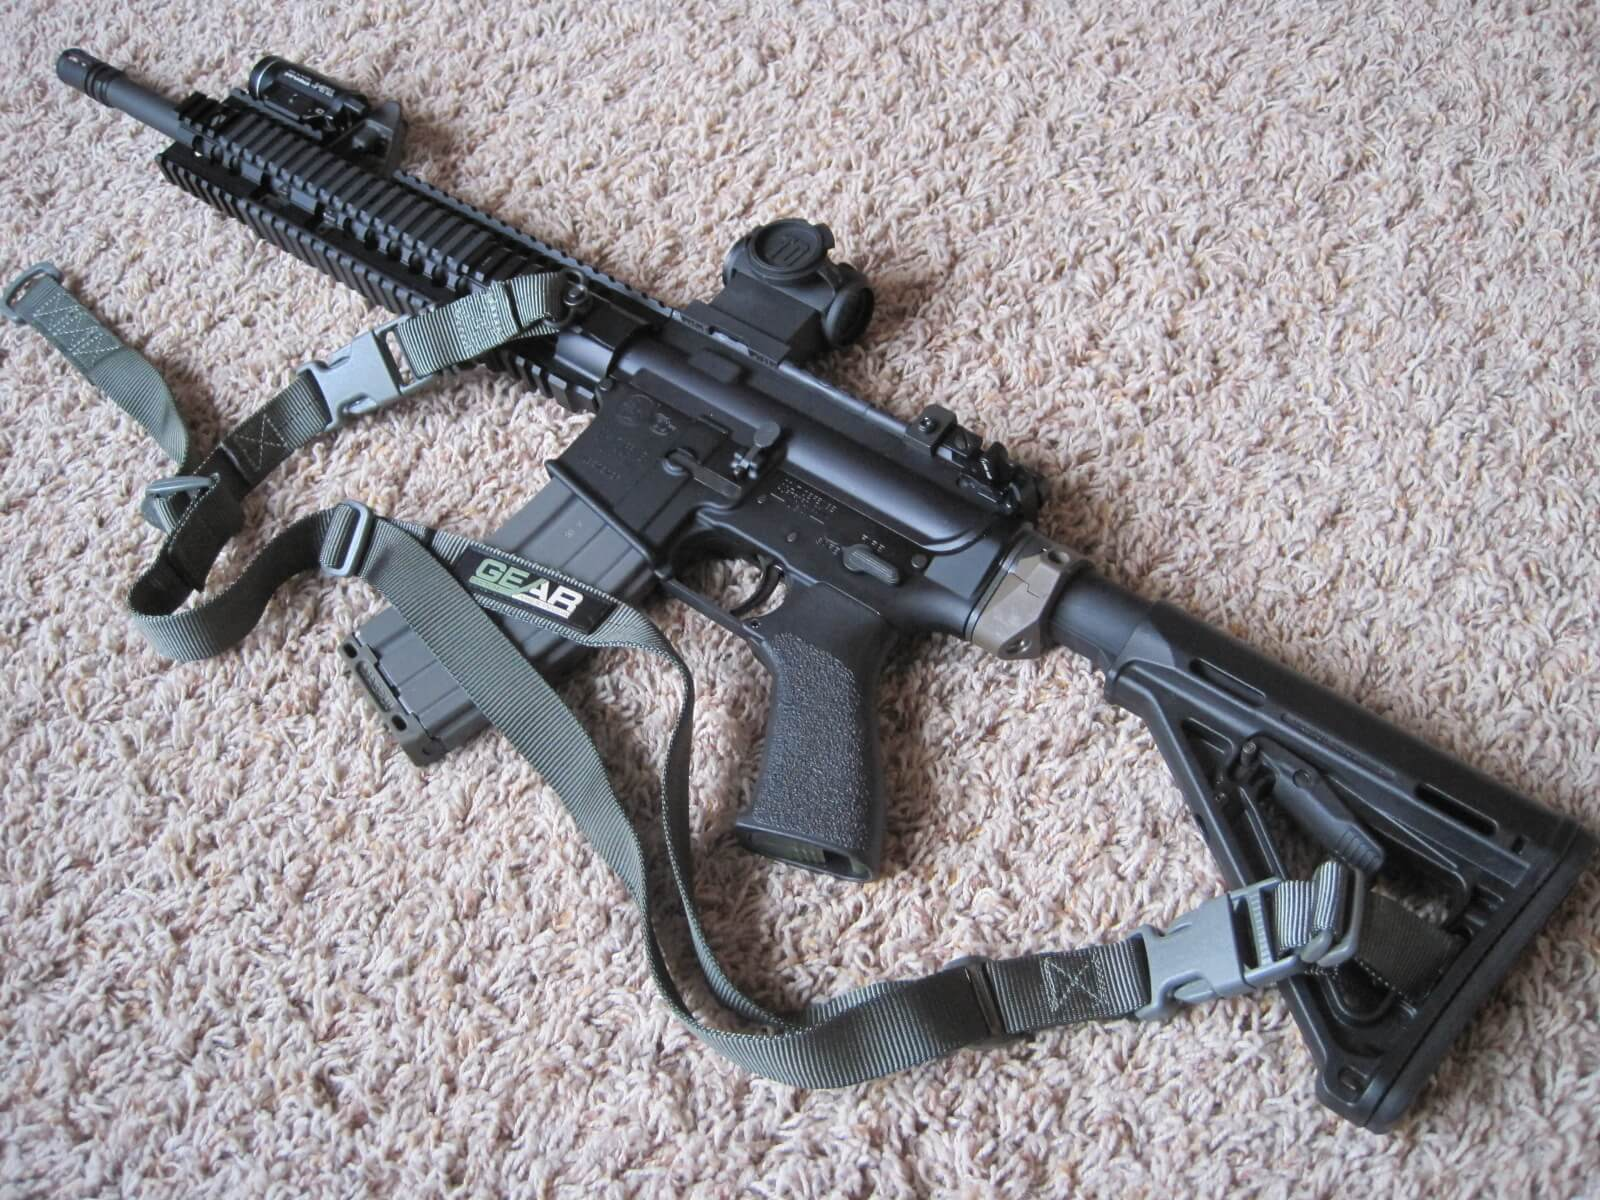 GS-2P on MOE stock & Daniel Defense rail